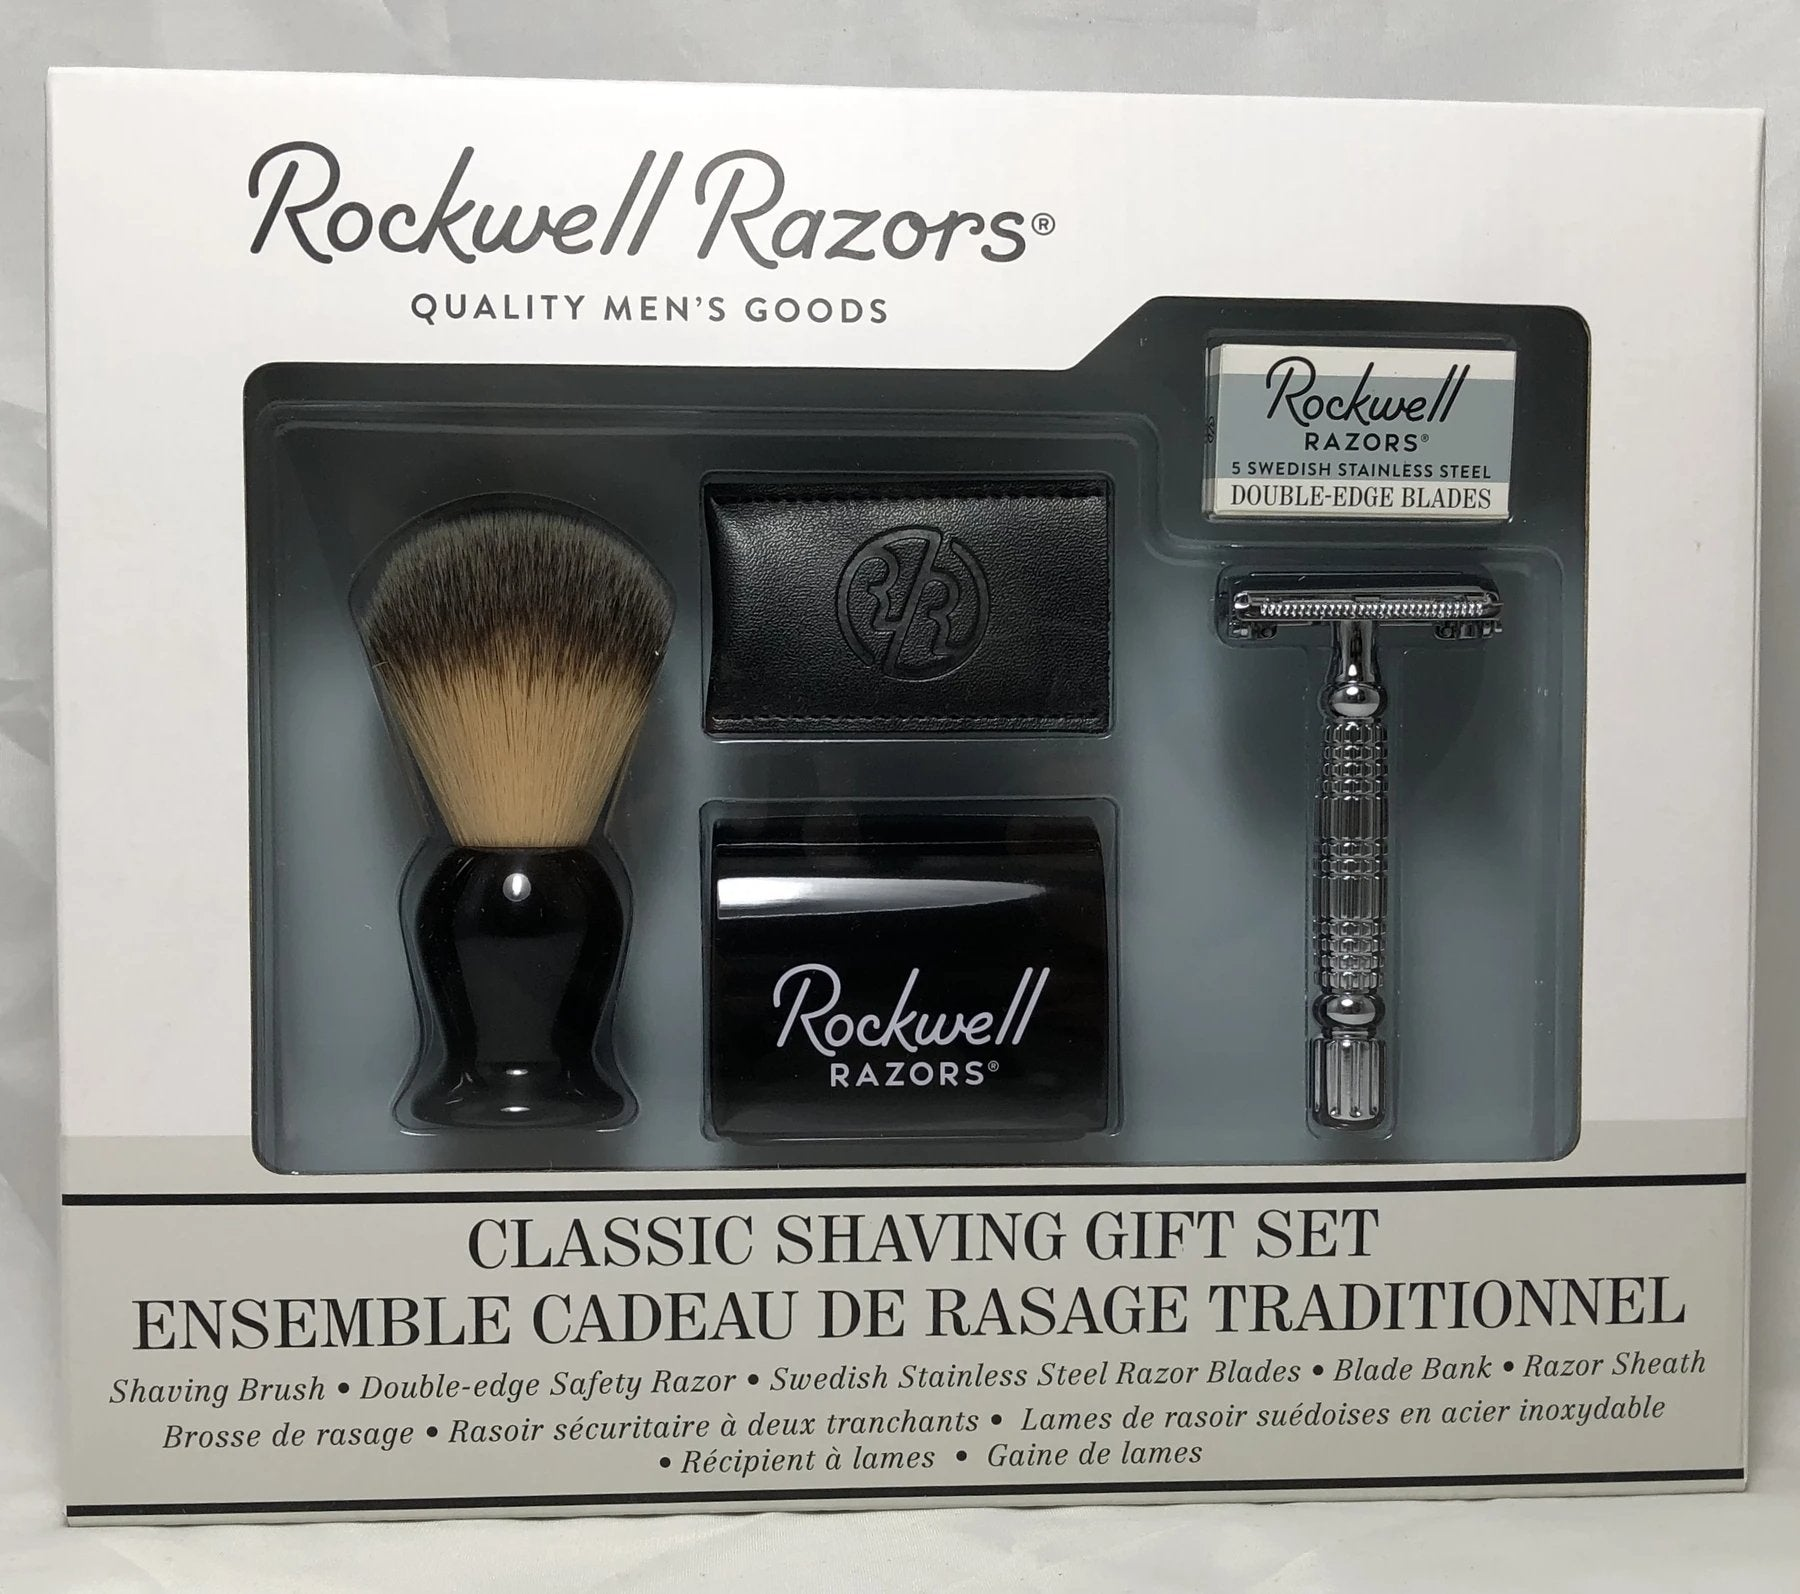 Shaving Set by Rockwell Razors